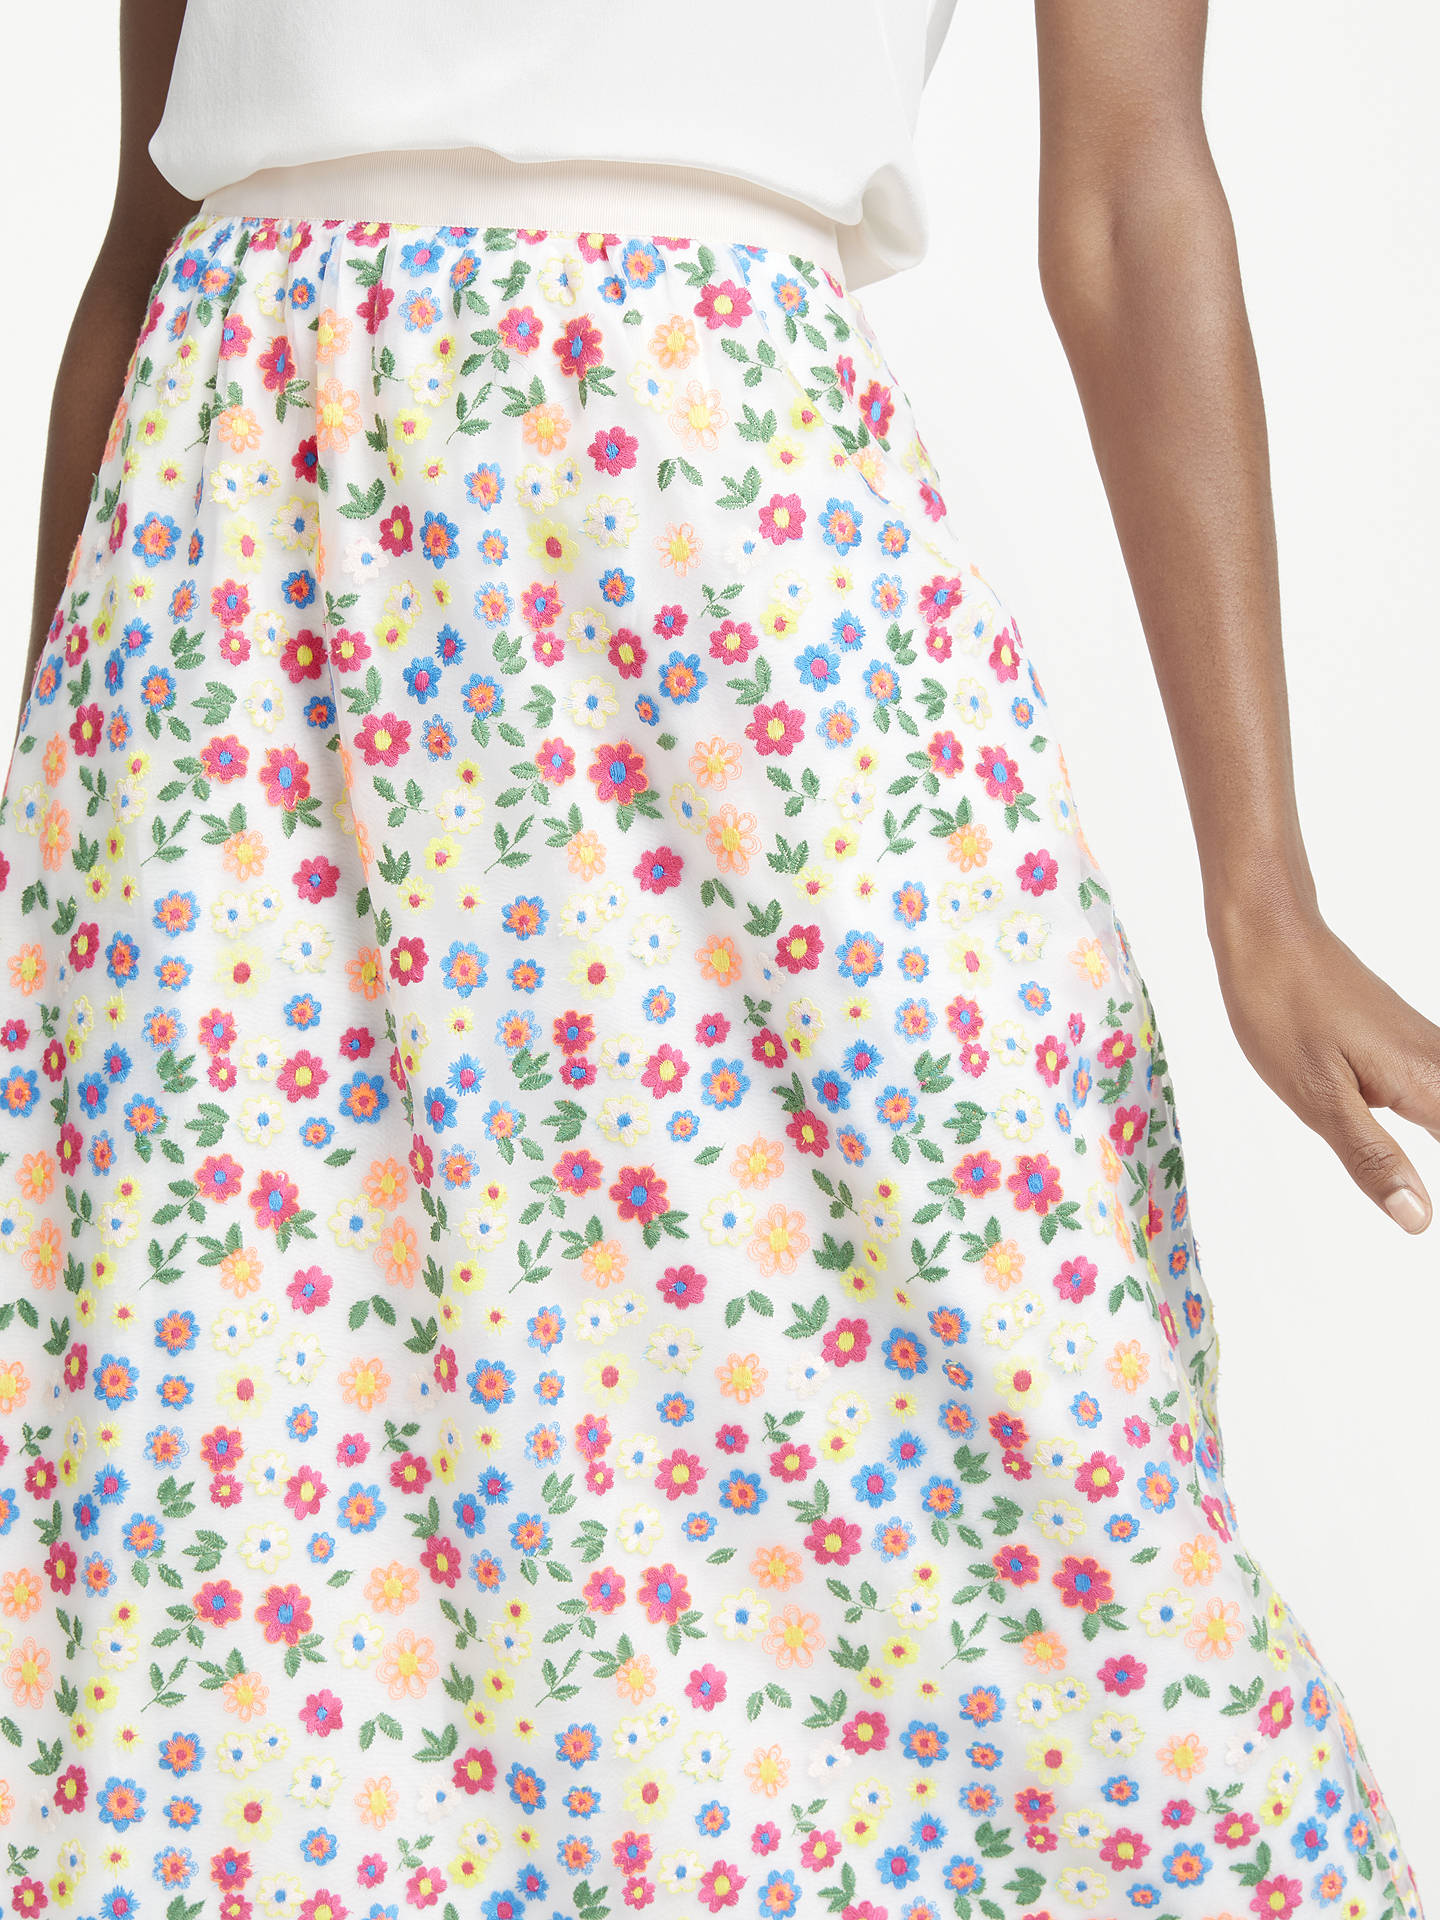 BuyBoden Marjorie Organza Floral Print Skirt, Red Pop, 10 Online at johnlewis.com